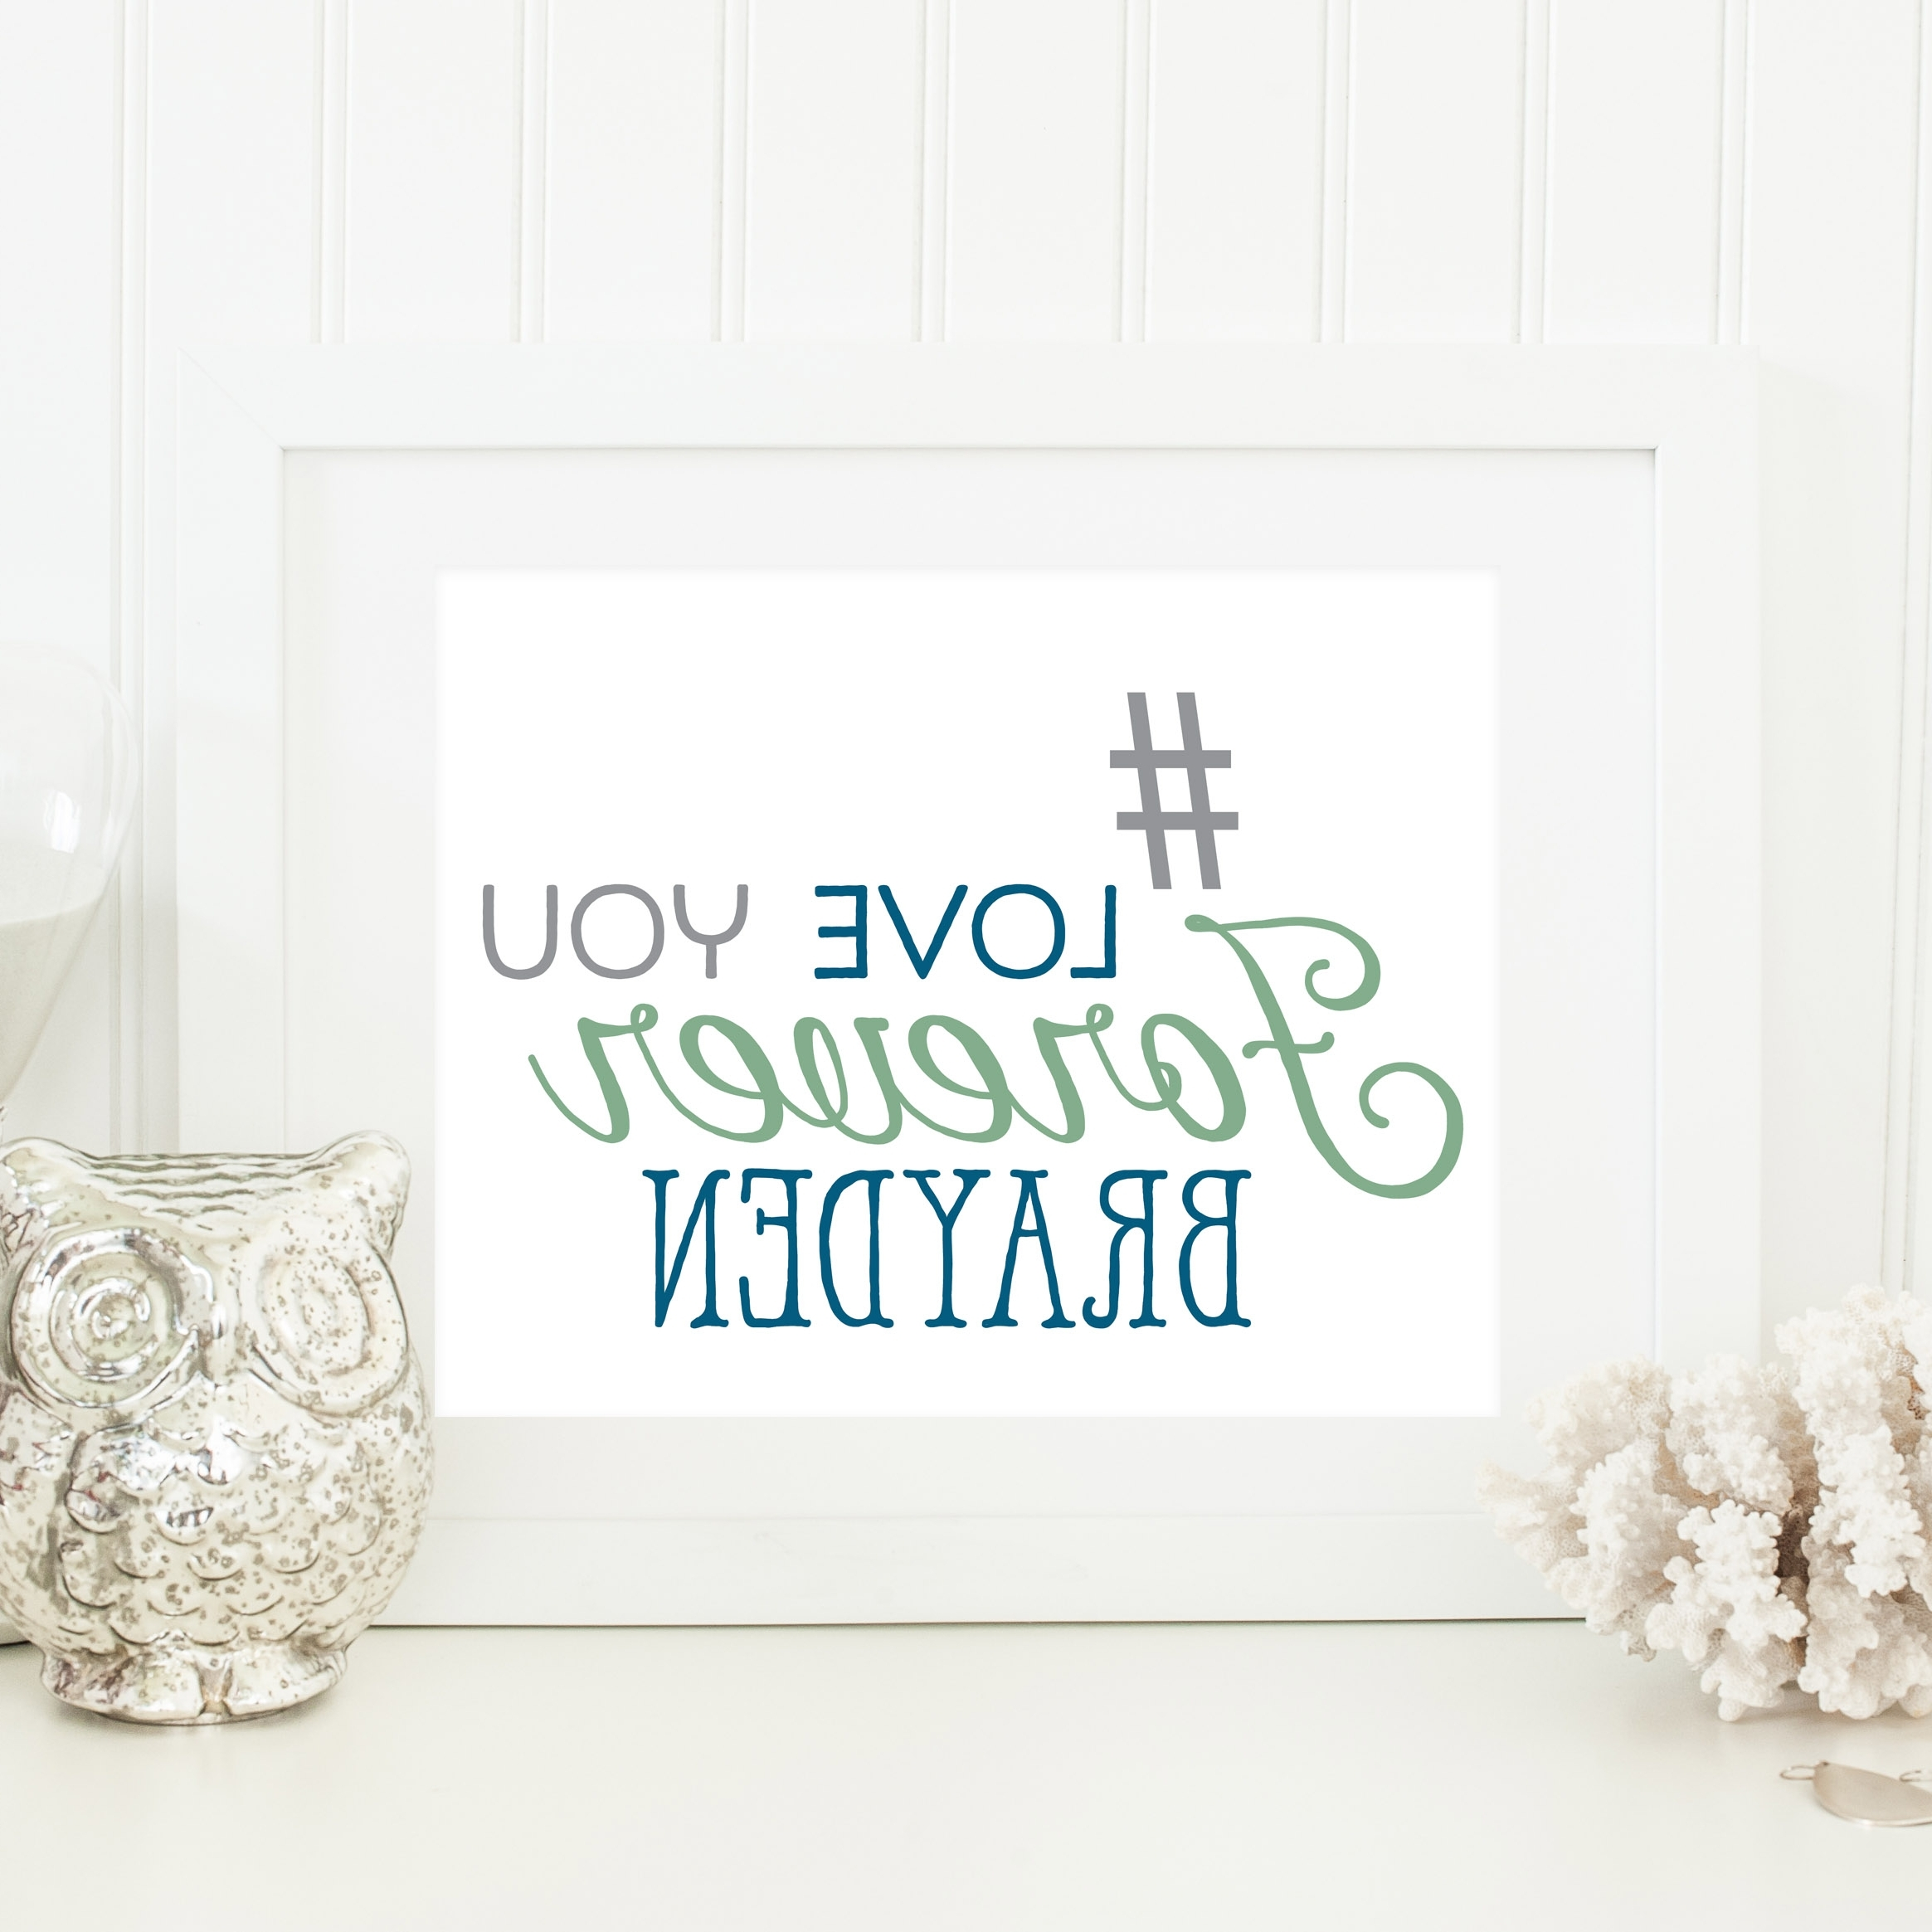 Personalized Nursery Wall Art Regarding Most Current Hashtag Art – Love You Forever (View 9 of 15)